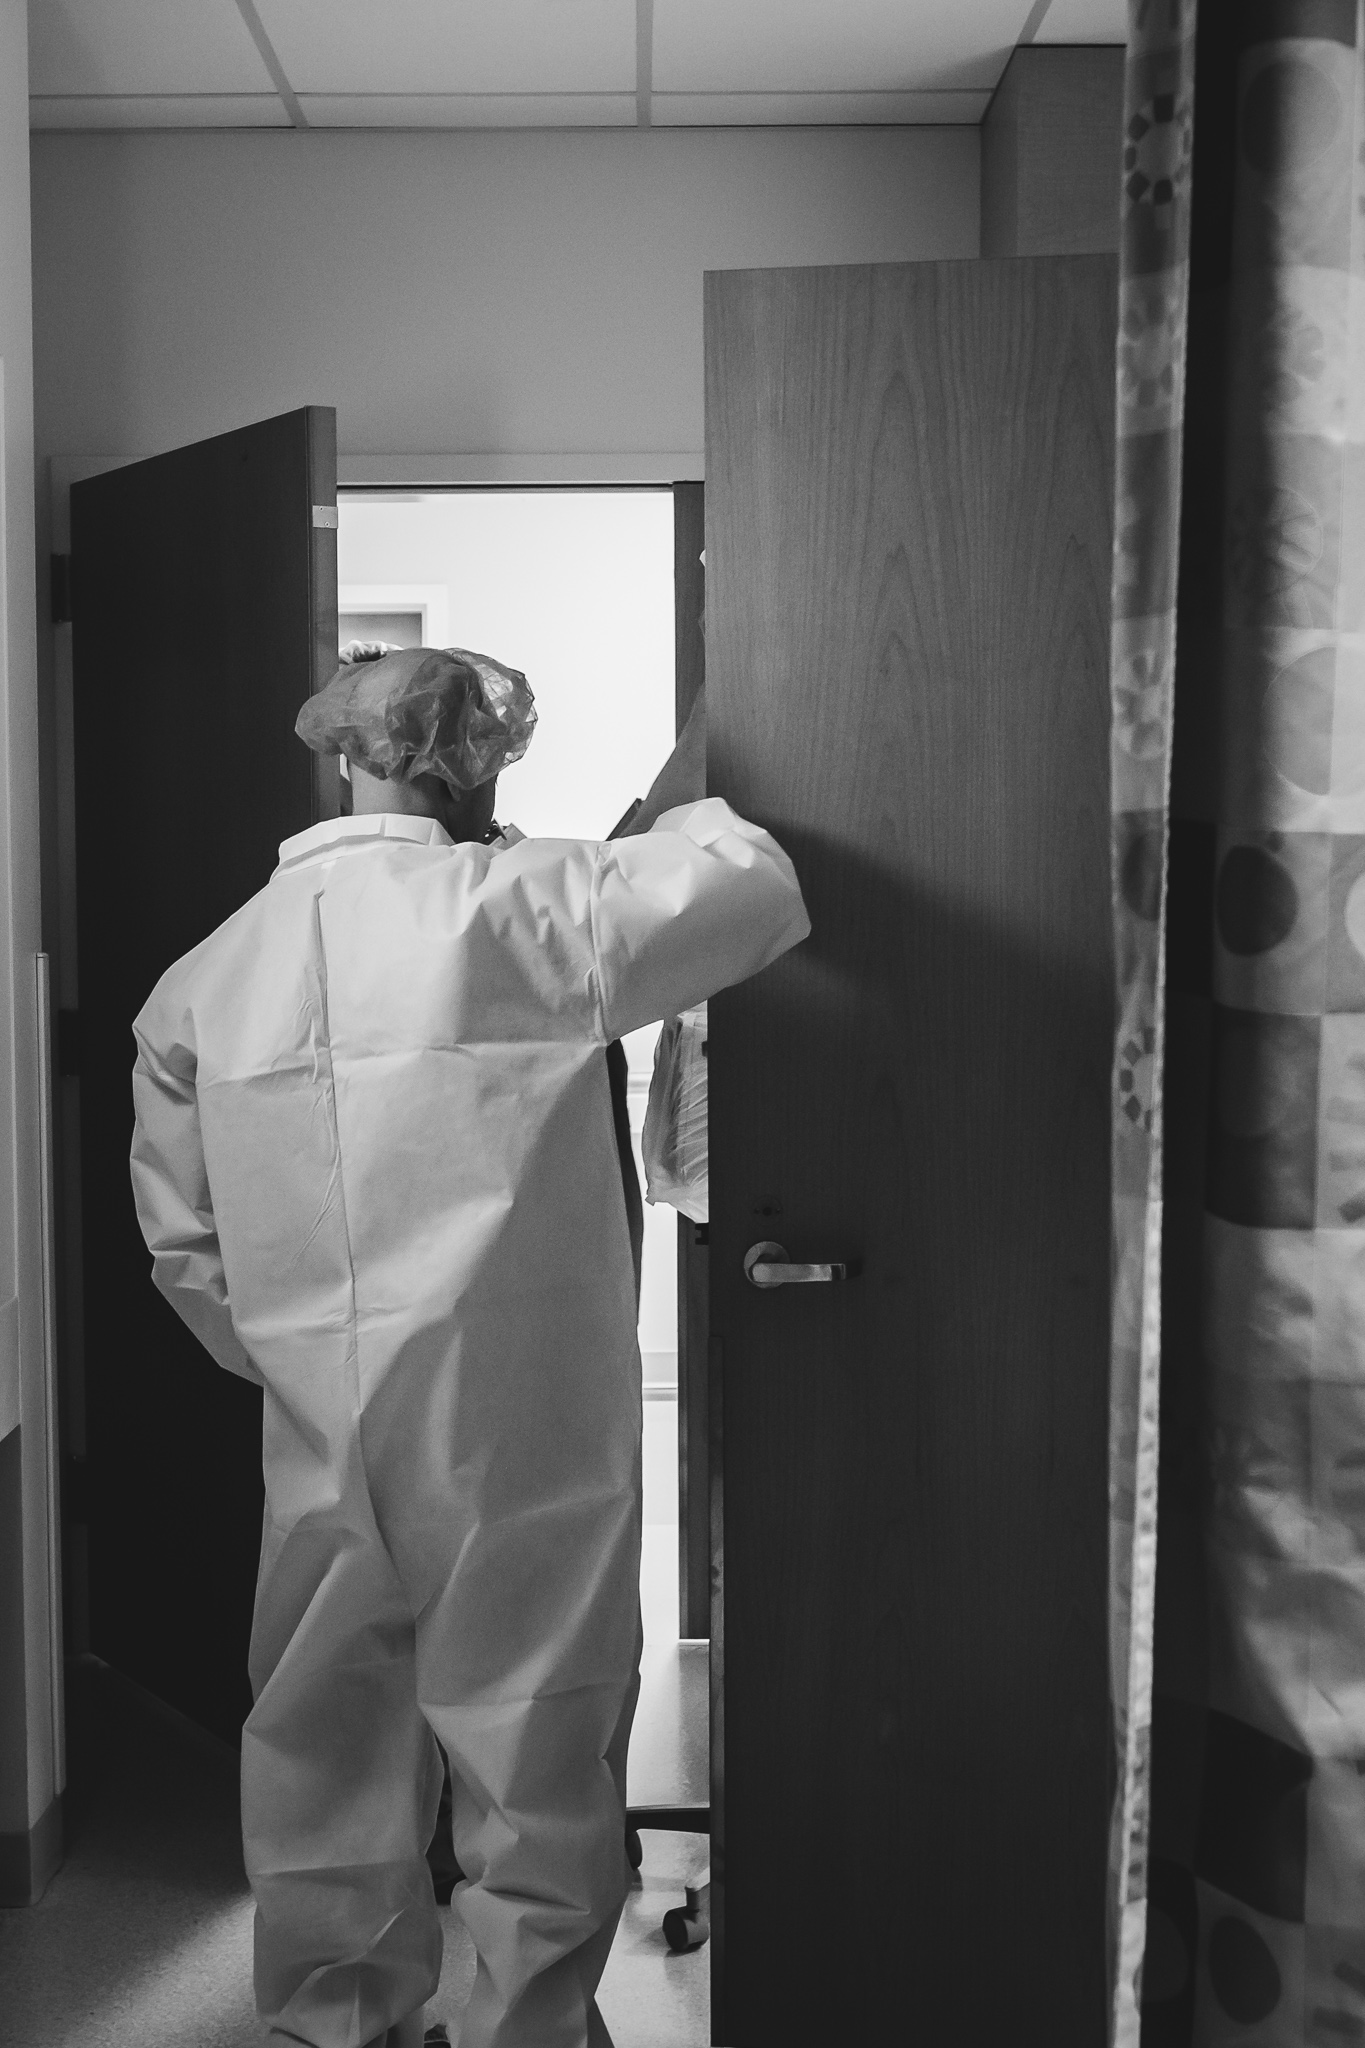 A man in surgery scrubs walks out of a hospital room.